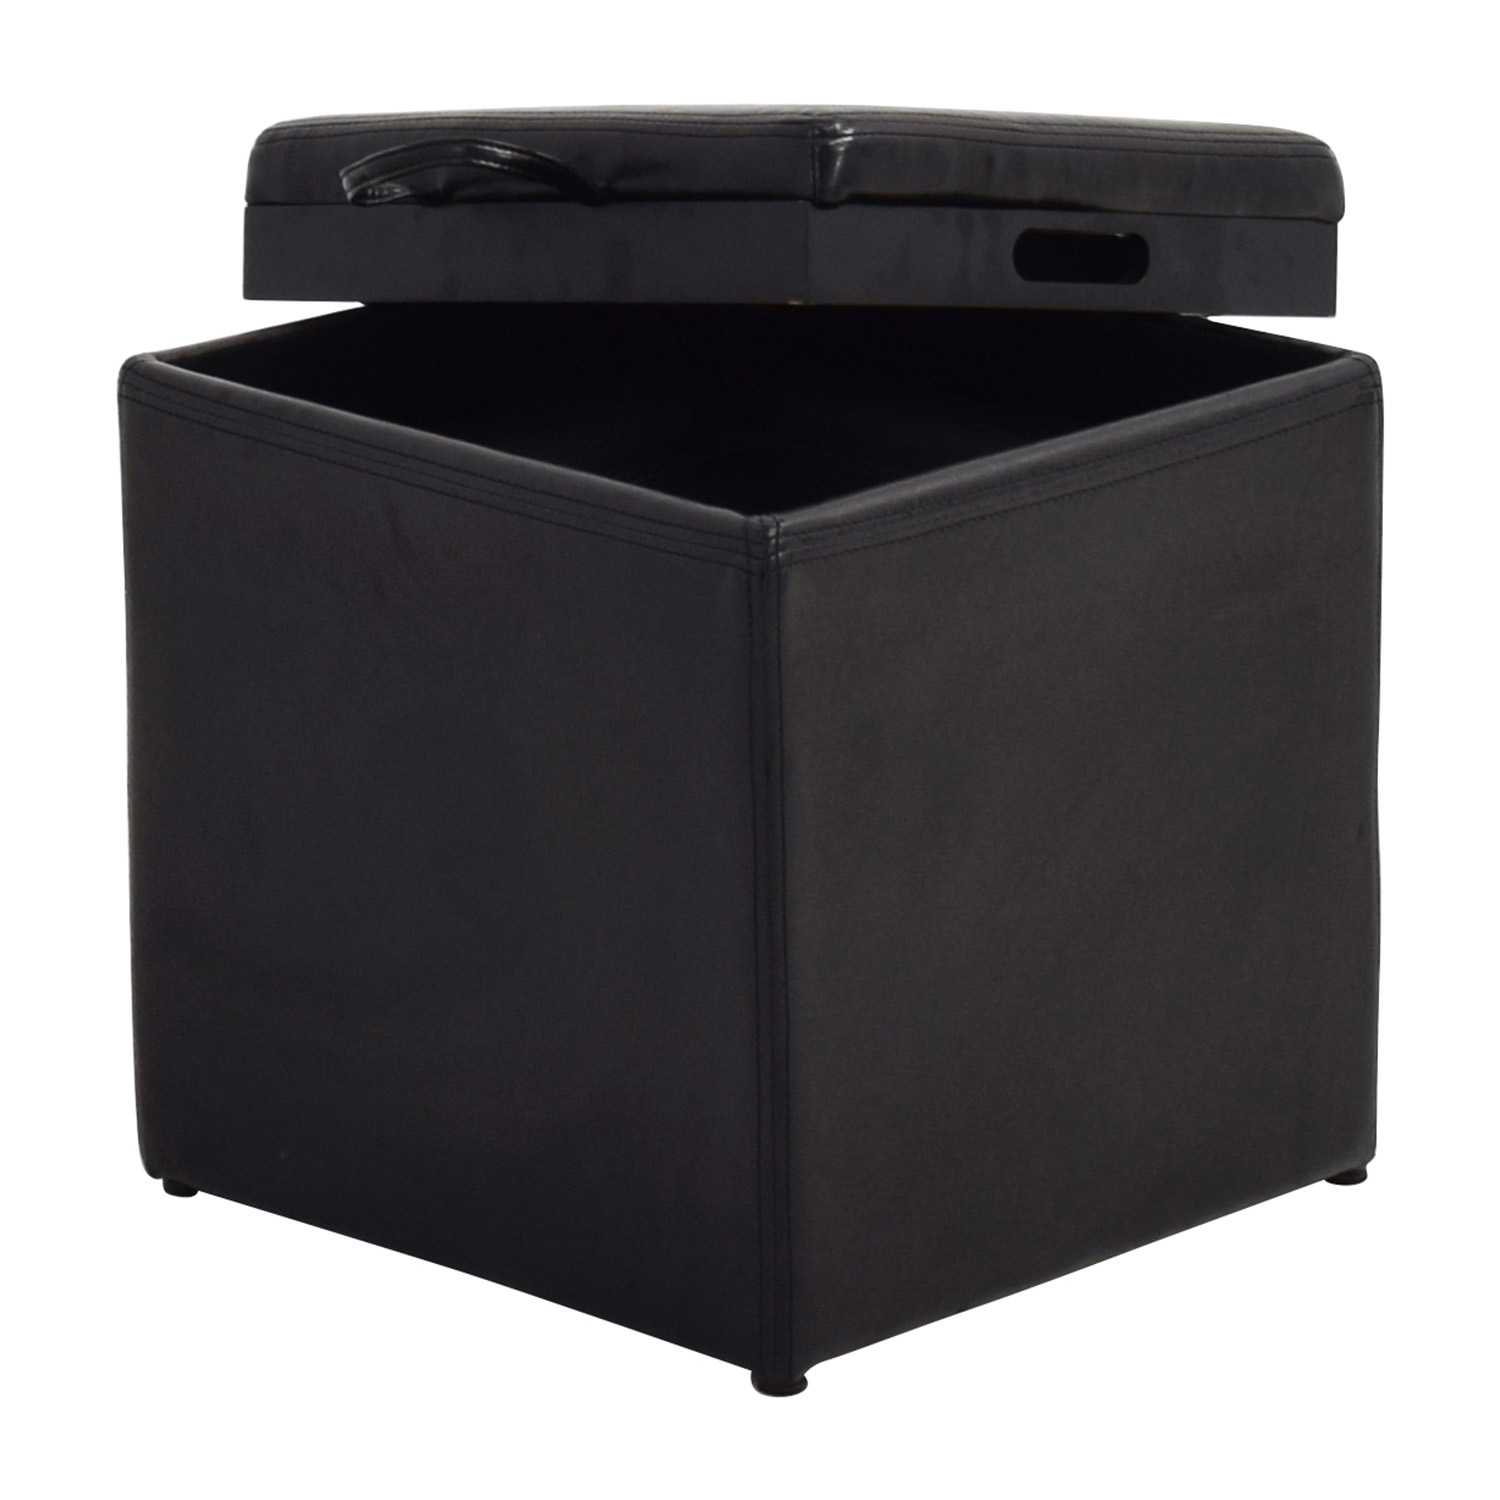 Stunning Smaller Ottoman Nj Off Black Lear Storage Ottoman Ottoman Black Lear Storage Ottoman Smaller Ottoman Chairs Small Lear Club Chair furniture Small Leather Chairs With Ottomans